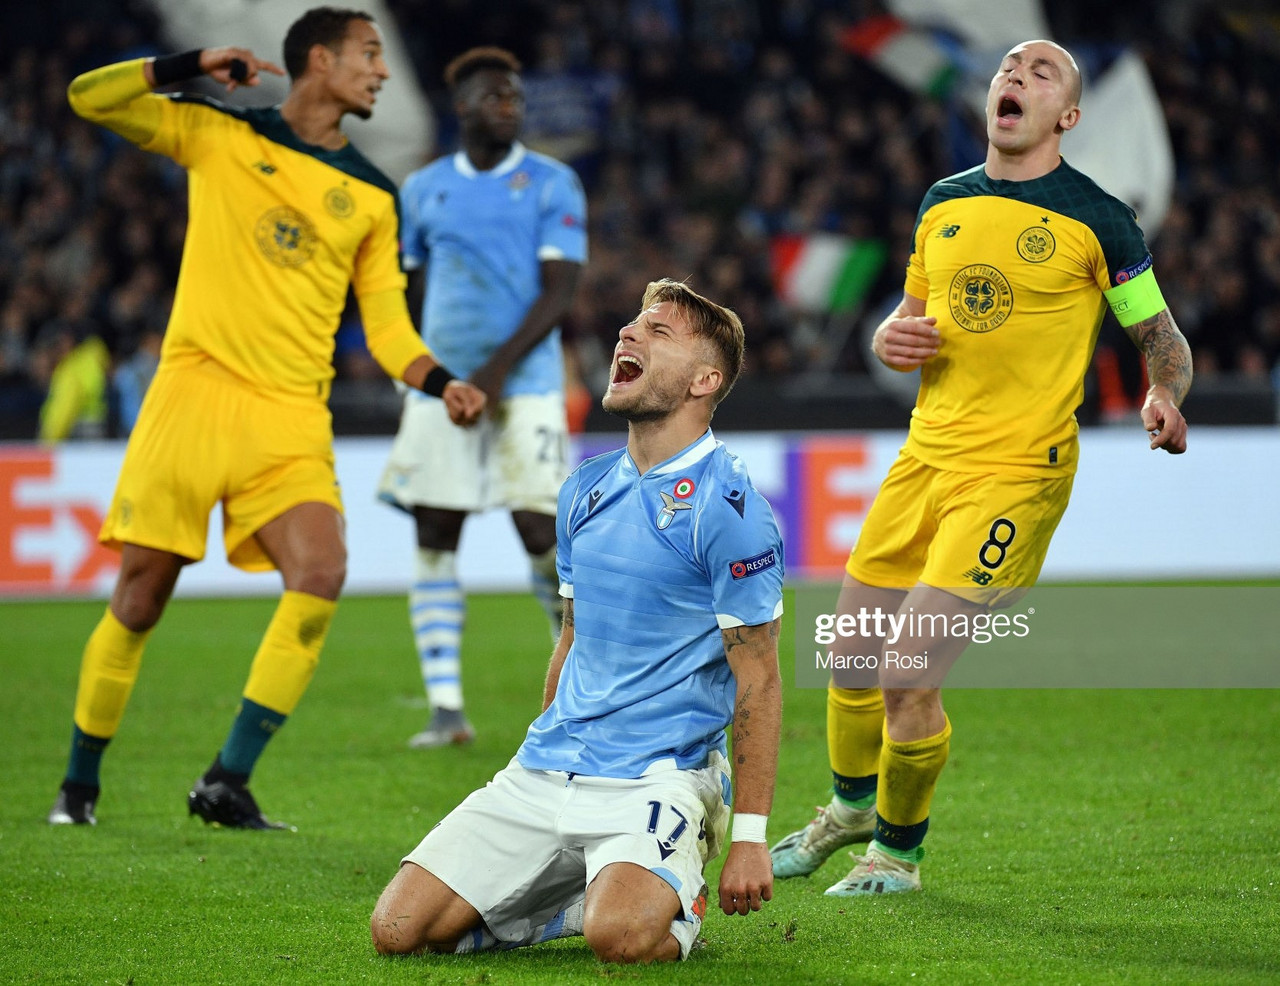 Lazio 1-2 Celtic: Lazio lose a heartbreaker at the Stadio Olimpico